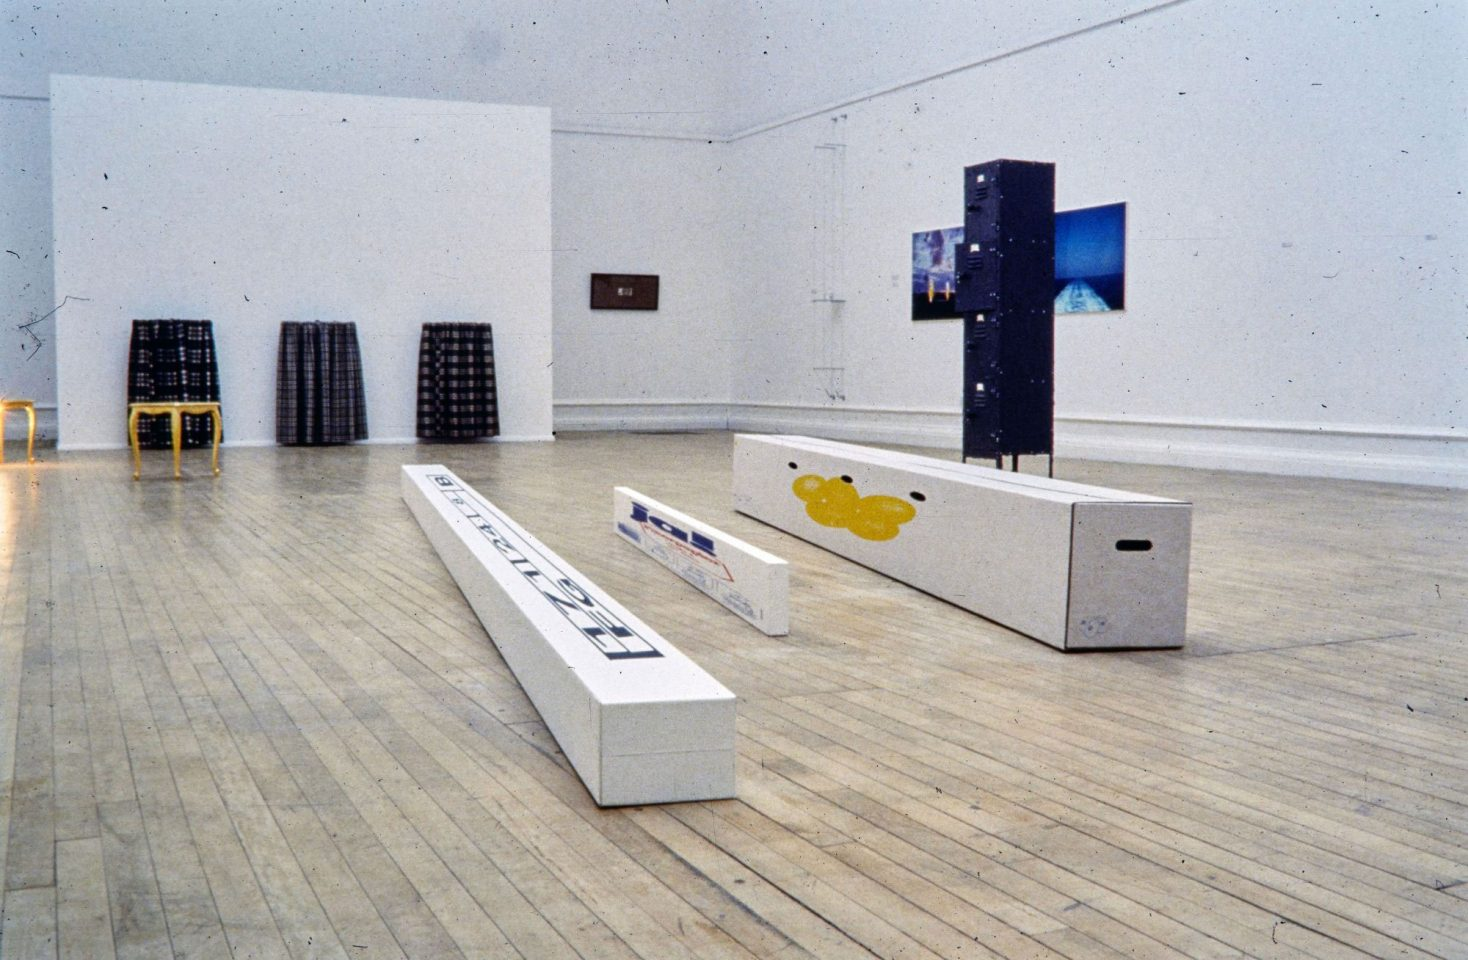 Installation view from Refusing to Surface: Art and the Transfiguration of the Ordinary featuring Guillaume Bijl, Joan Brossa, Philippe Cazal, Tony Carter, Leo Copers, Thomas Grunfeld, Richard Hamilton, Yves Klein, Ange Leccia, Simon Linke, Caroline Russell, Haim Steinbach, Rosemarie Trockel, Peter Zimmerman.